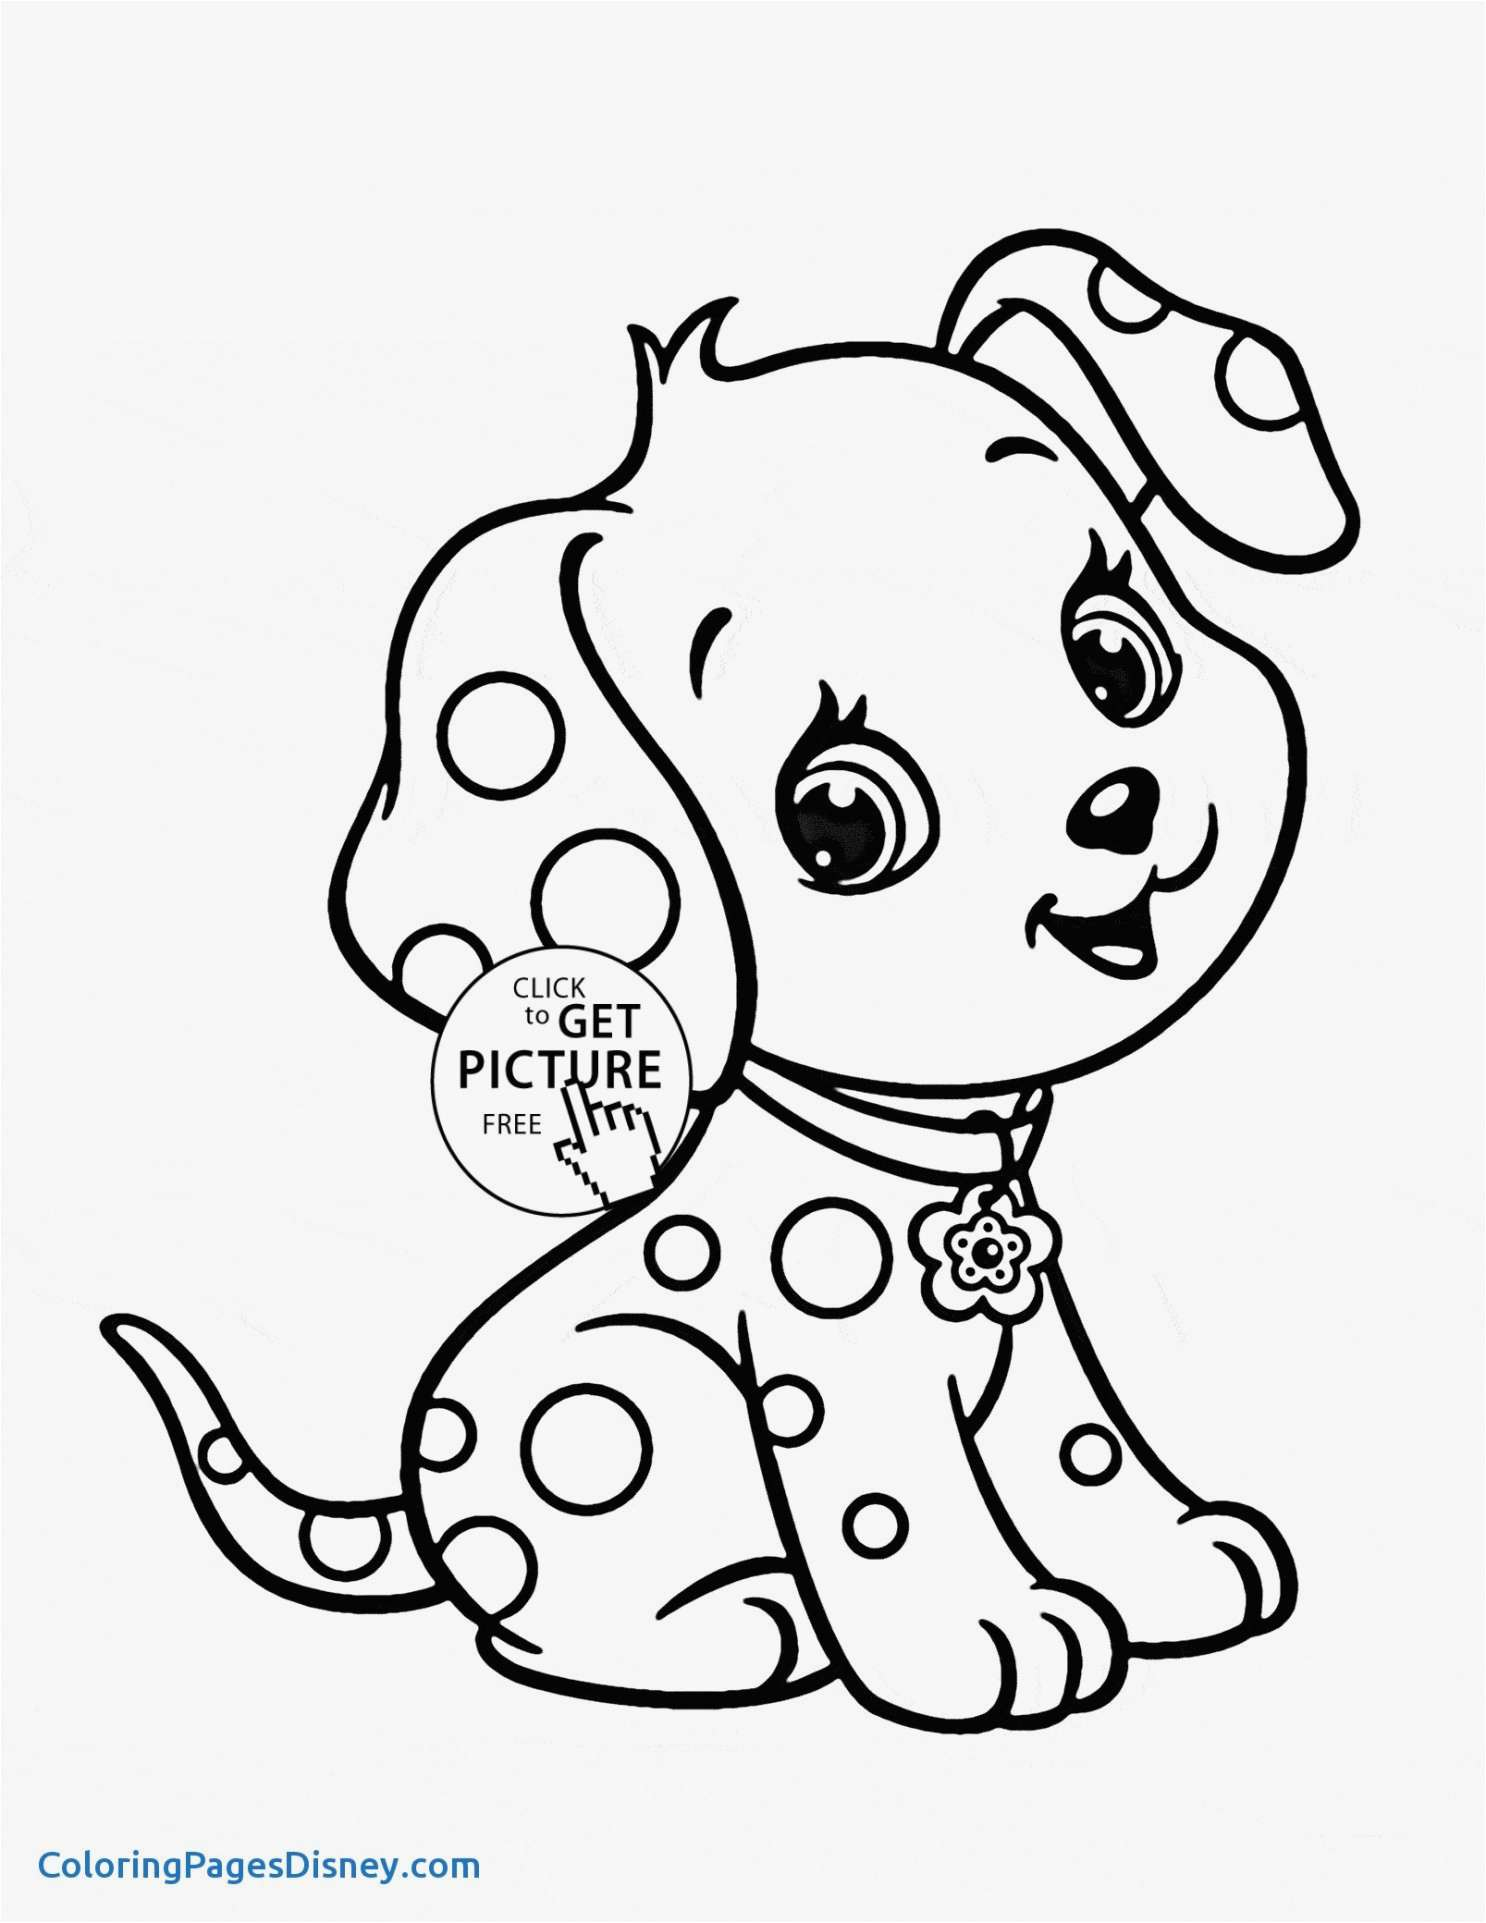 Camping Coloring Pages to Print  Printable 15n - To print for your project